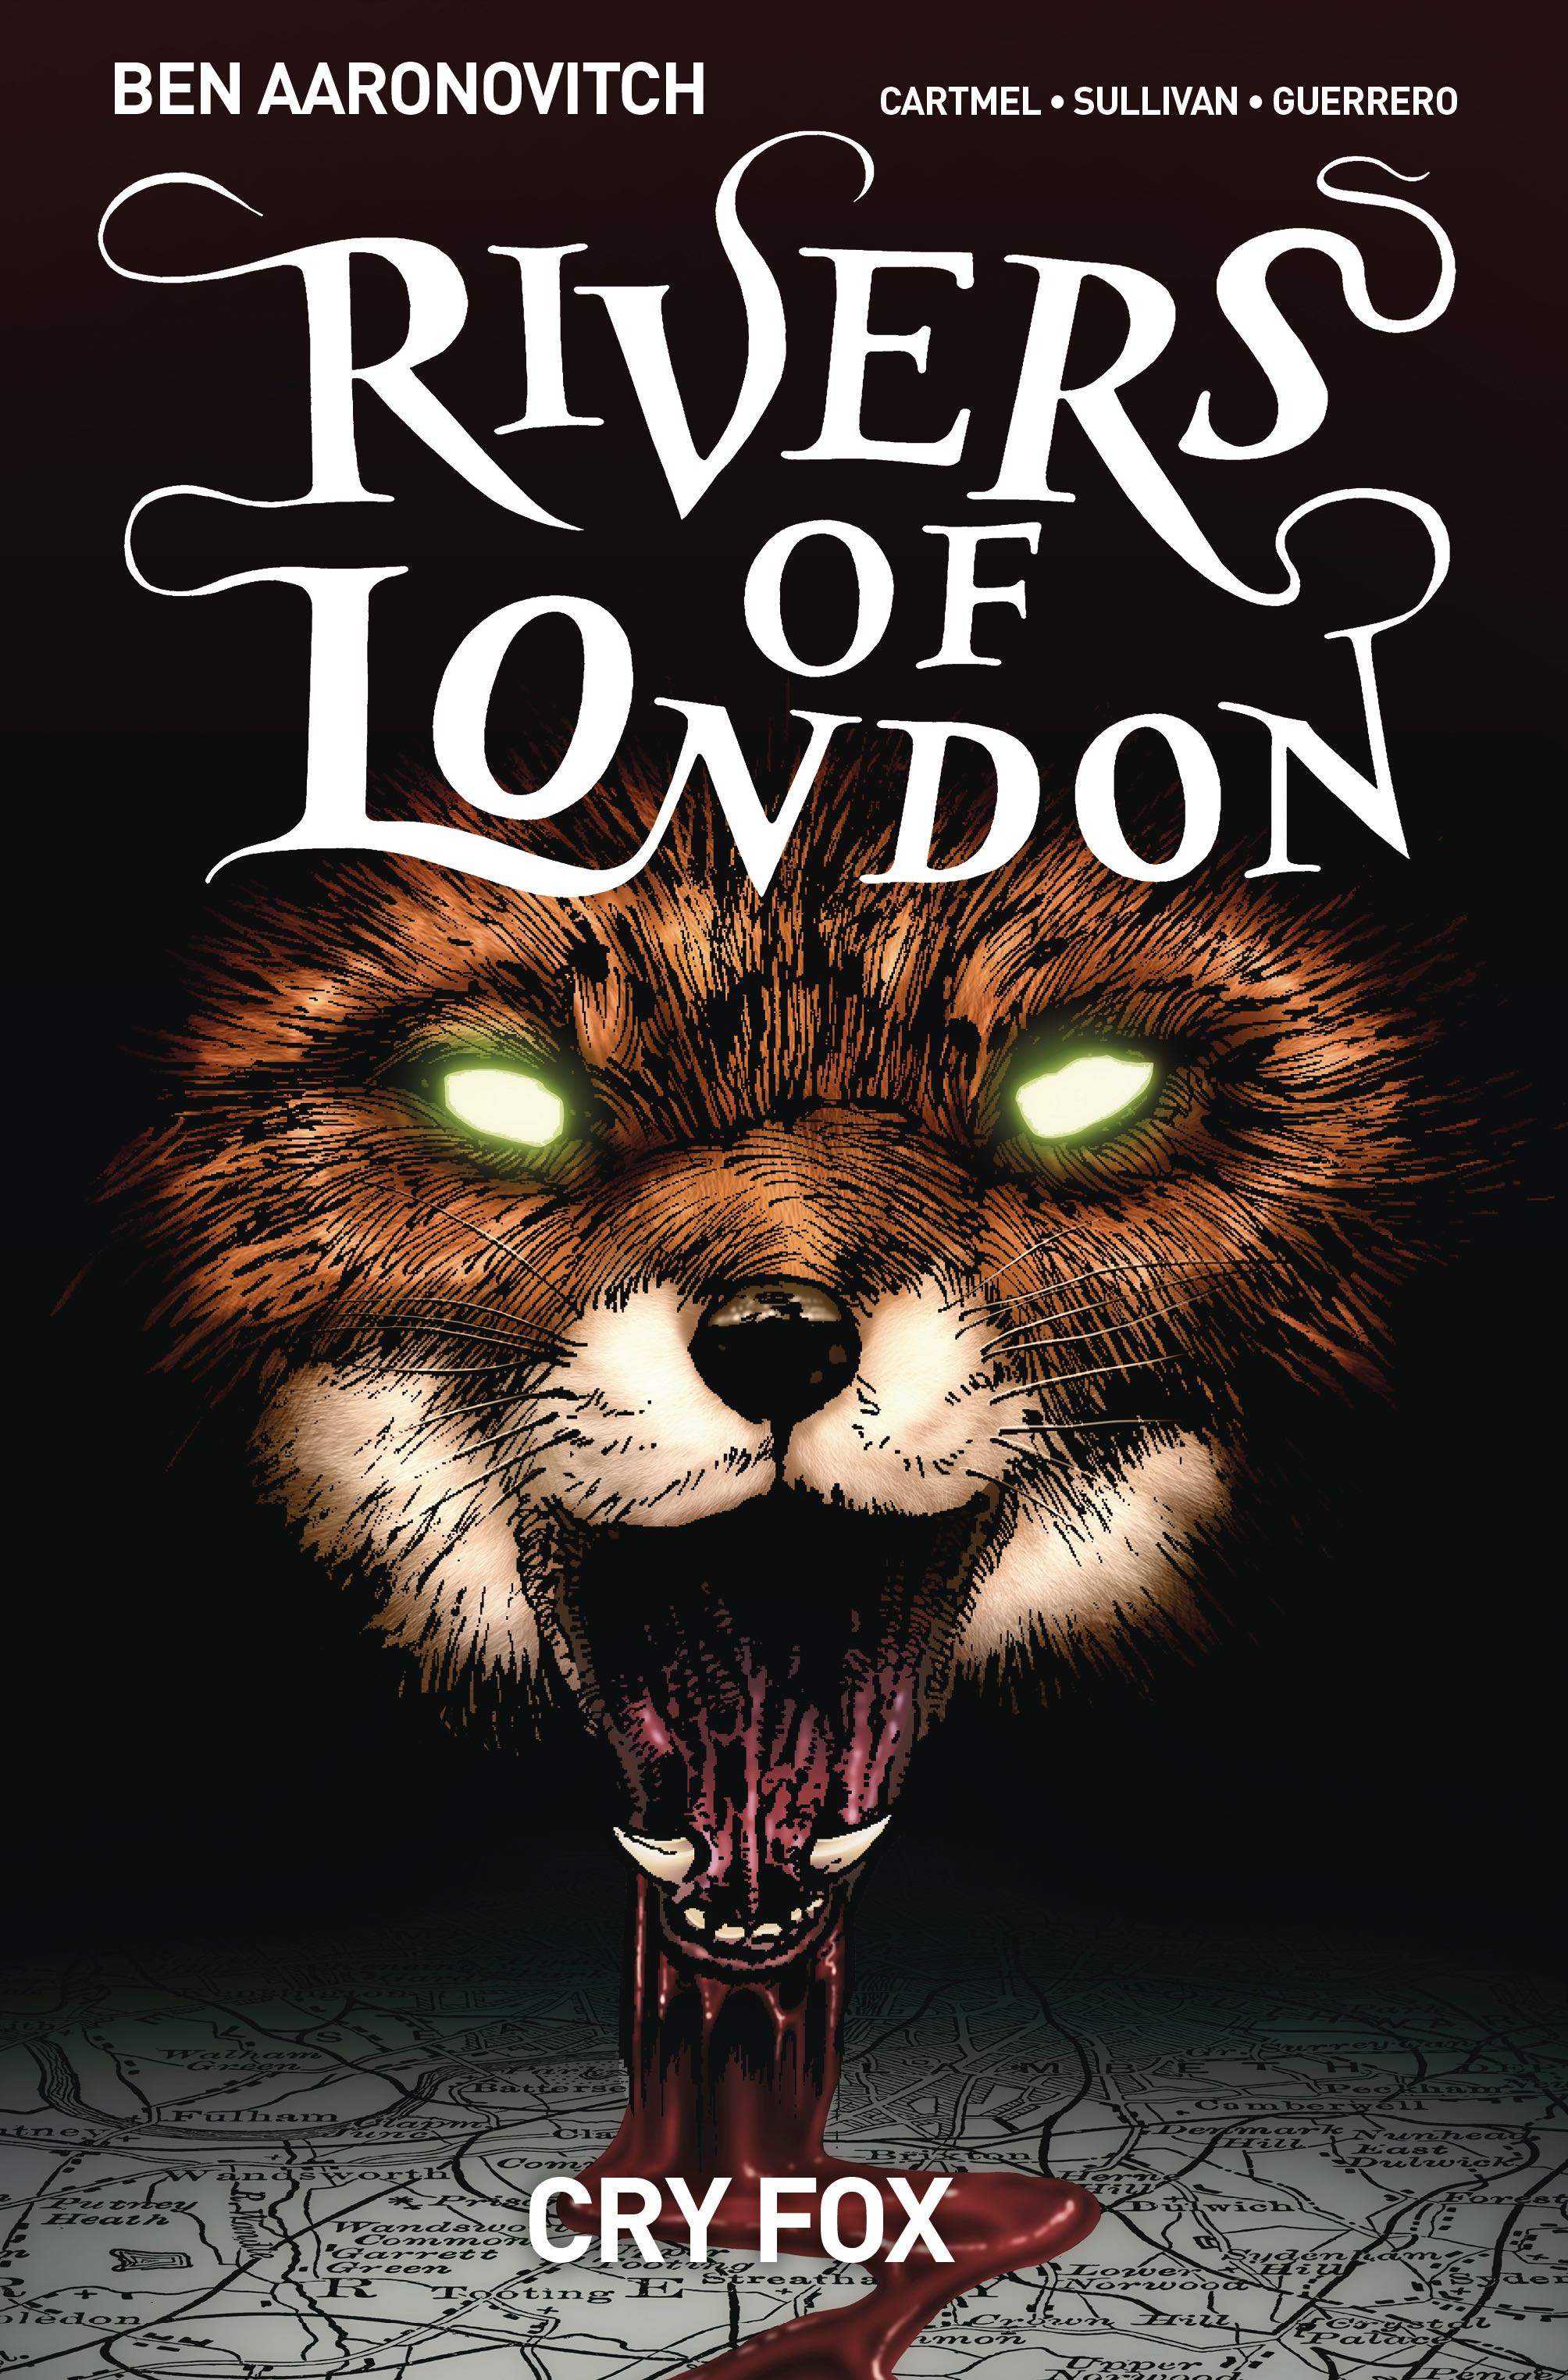 Episode 10 Cover of the Week! - (Titan Books) Rivers of London: Cry Fox #1Cover by Lee Sullivan and Luis GuerreroWritten by Ben Aaronovitch and Andrew CartmelIllustrated by Lee Sullivan and Luis GuerreroDid the Content Match the Drapes? - No :'(